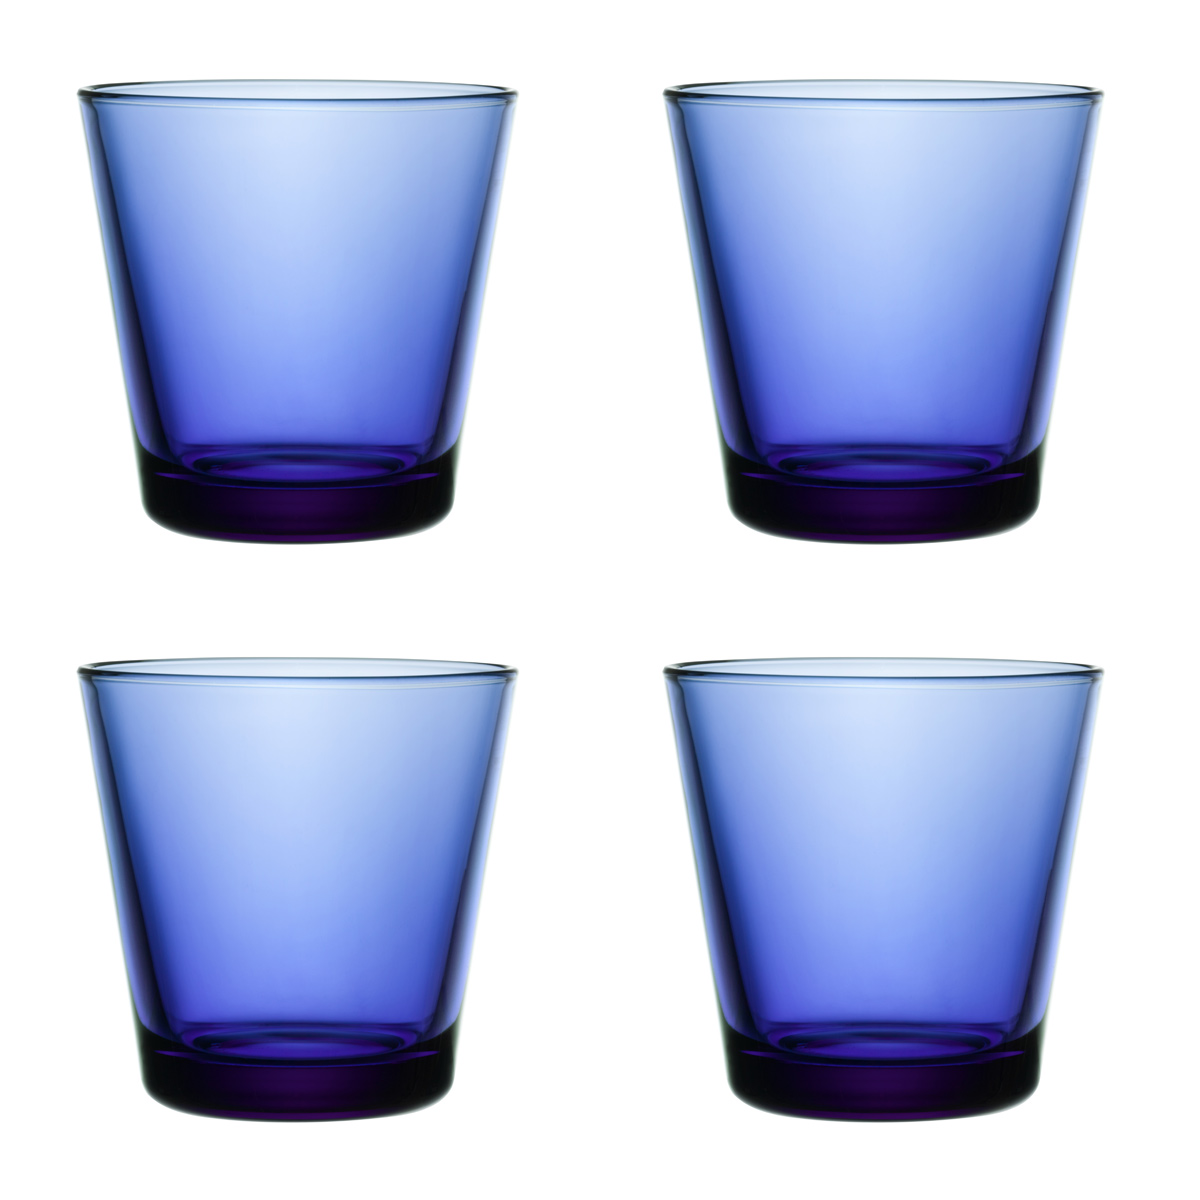 iittala kartio ultramarine 39 finland 100 39 medium tumbler set of 4 finland 100th anniversary. Black Bedroom Furniture Sets. Home Design Ideas